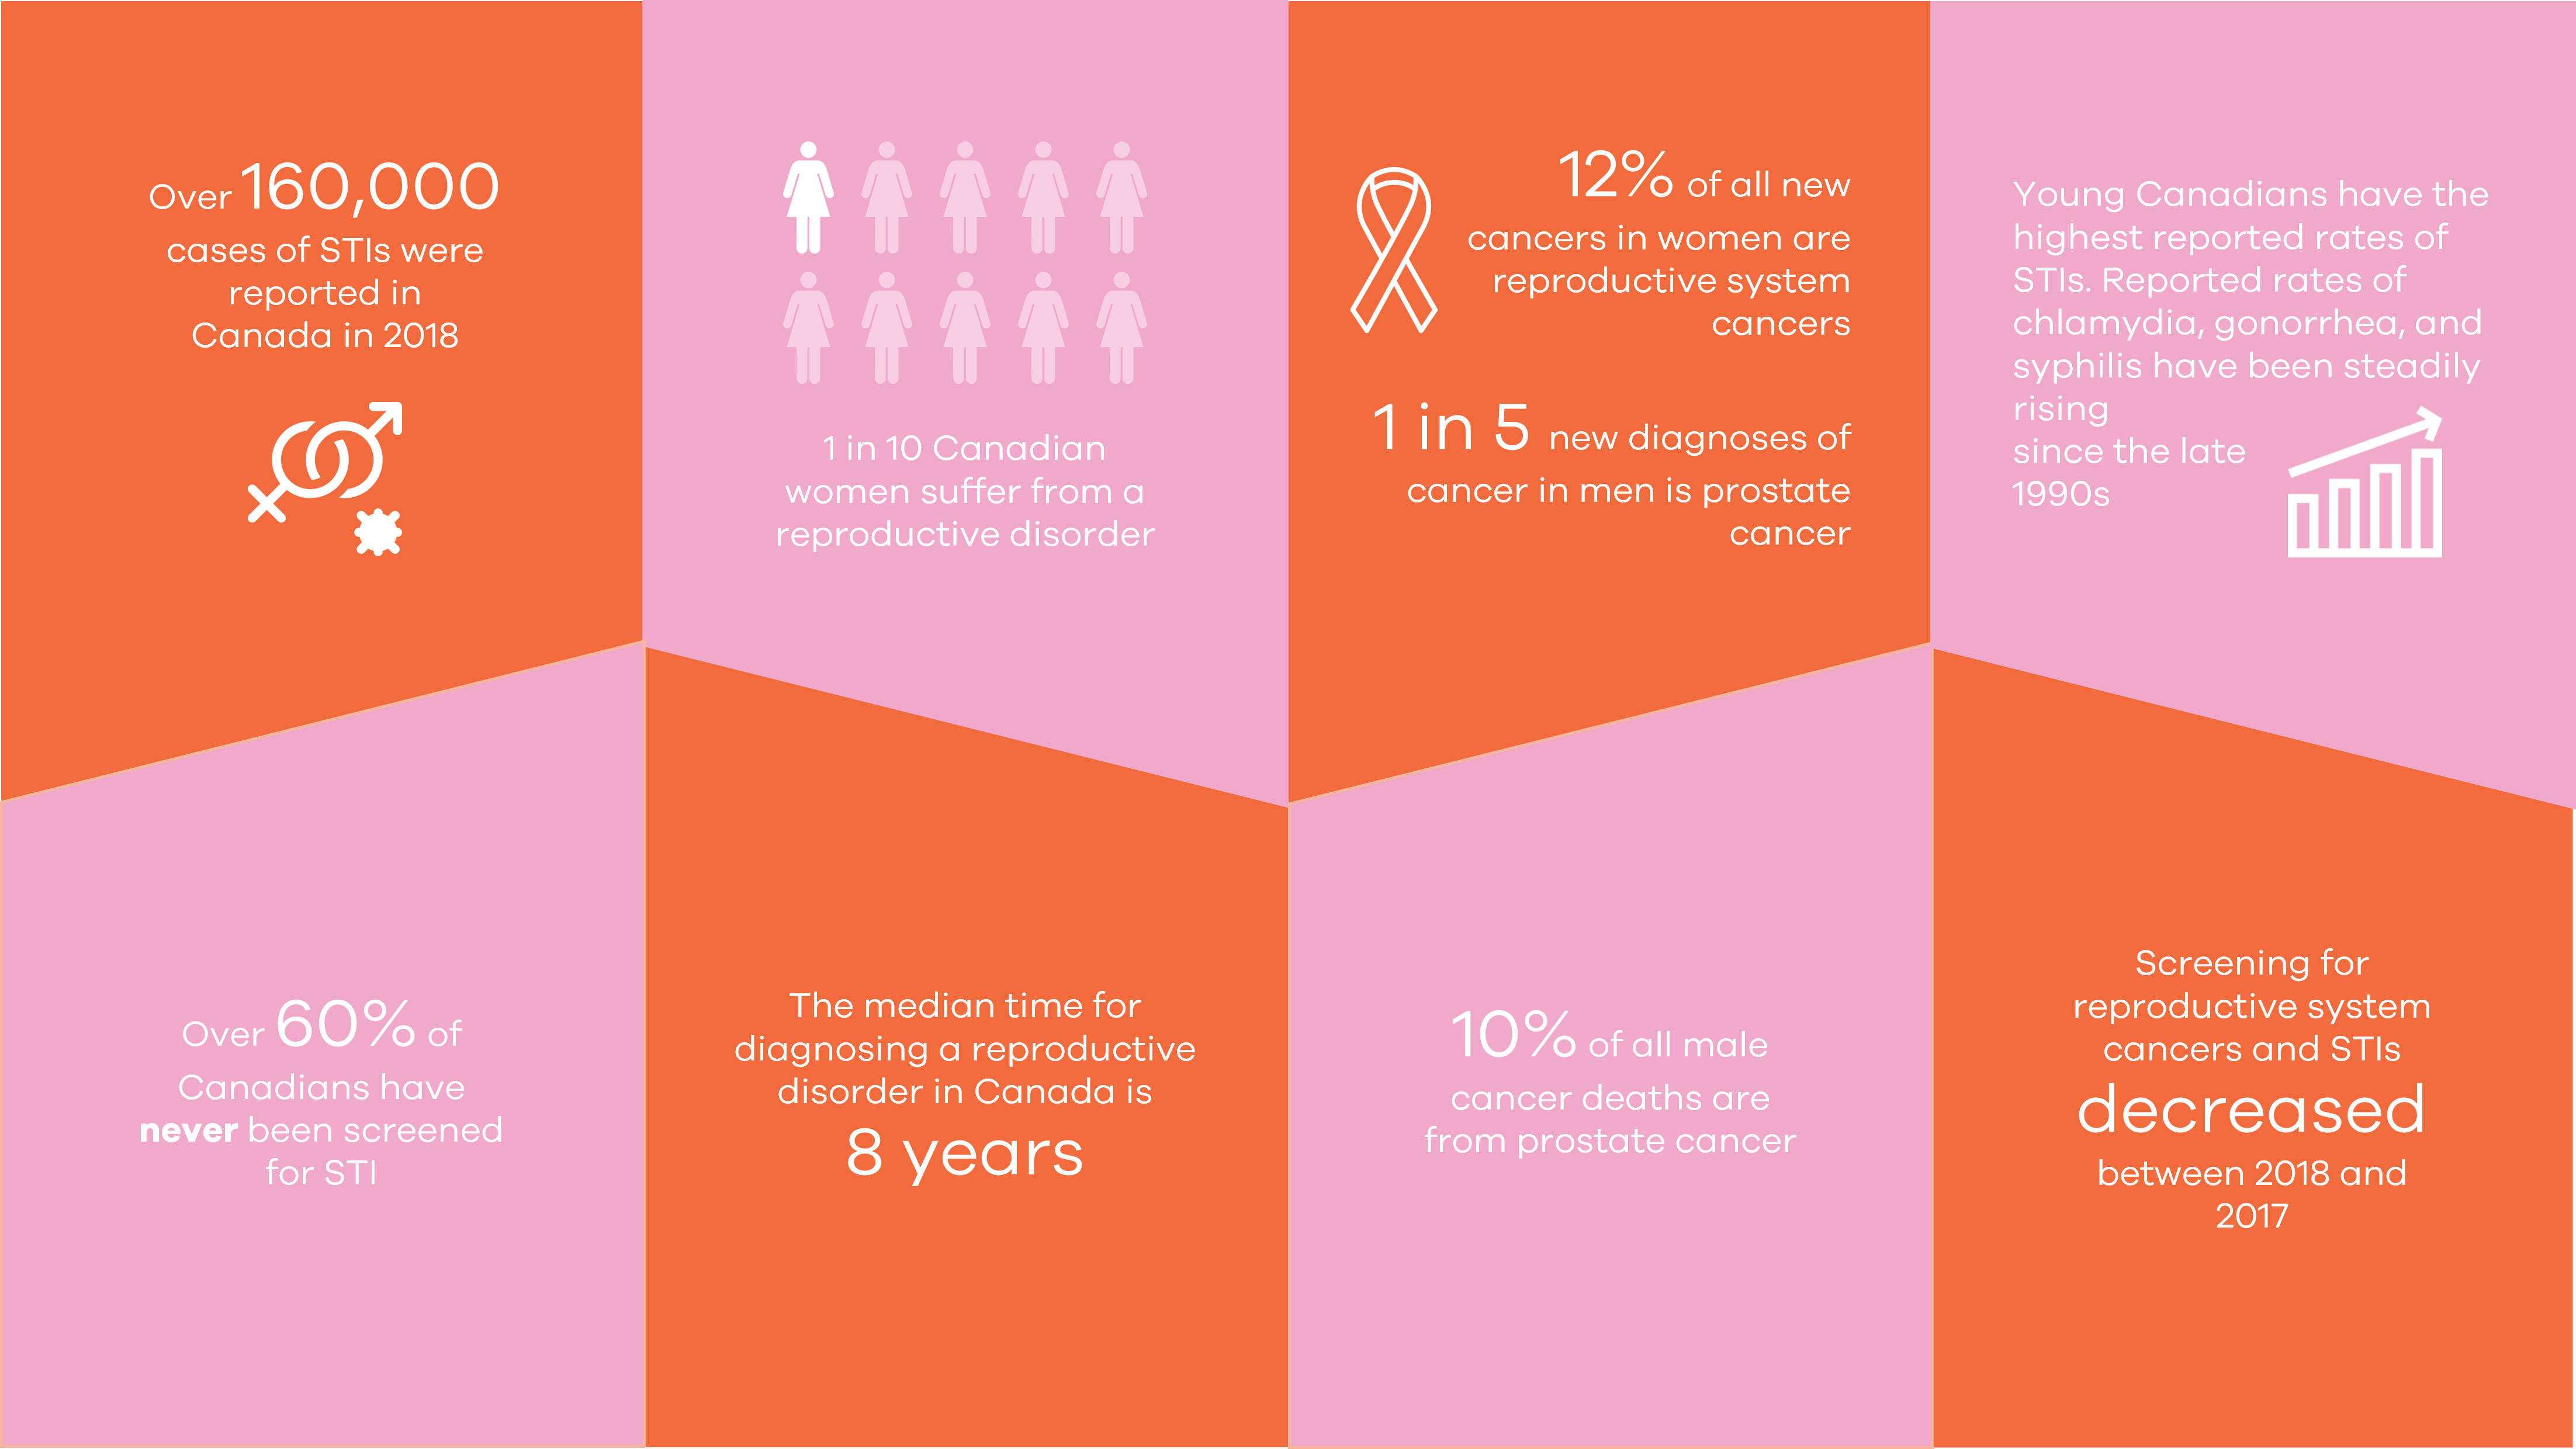 Pink and red graphical image showing statistics. Over 60,000 cases of STIs were reported in Canada in 2018. 1 in 10 Canadian women suffer from a reproductive disorder. 12% of all new cancers in women are reproductive system cancers. 1 in 5 new diagnoses of cancer in men is prostate cancer. Young Canadians have the highest reported rates of STIs. Reported rates of chlamydia, gonorrhea, and syphilis have been steadily rising since the late 1990s. Over 60% of Canadians have never been screened for STI. The median diagnosis time for diagnosing a reproductive disorder in Canada is 8 years. 10% of all male cancer deaths are from prostate cancer. Screening for reproductive system cancers and STIs decreased between 2018 and 2017.